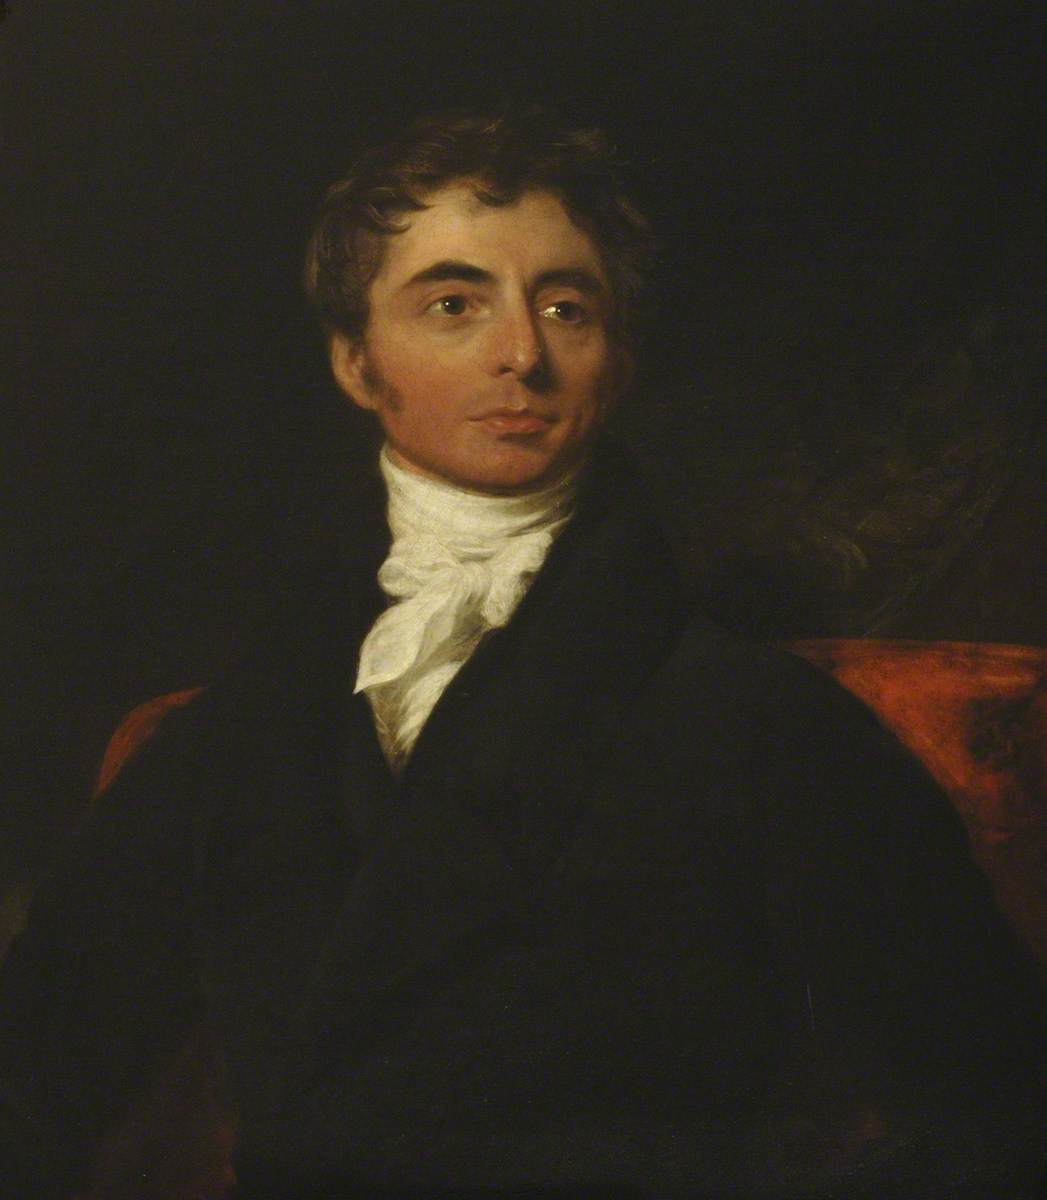 Robert Southey, Commoner (1792), Poet Laureate (1813) | Art UK